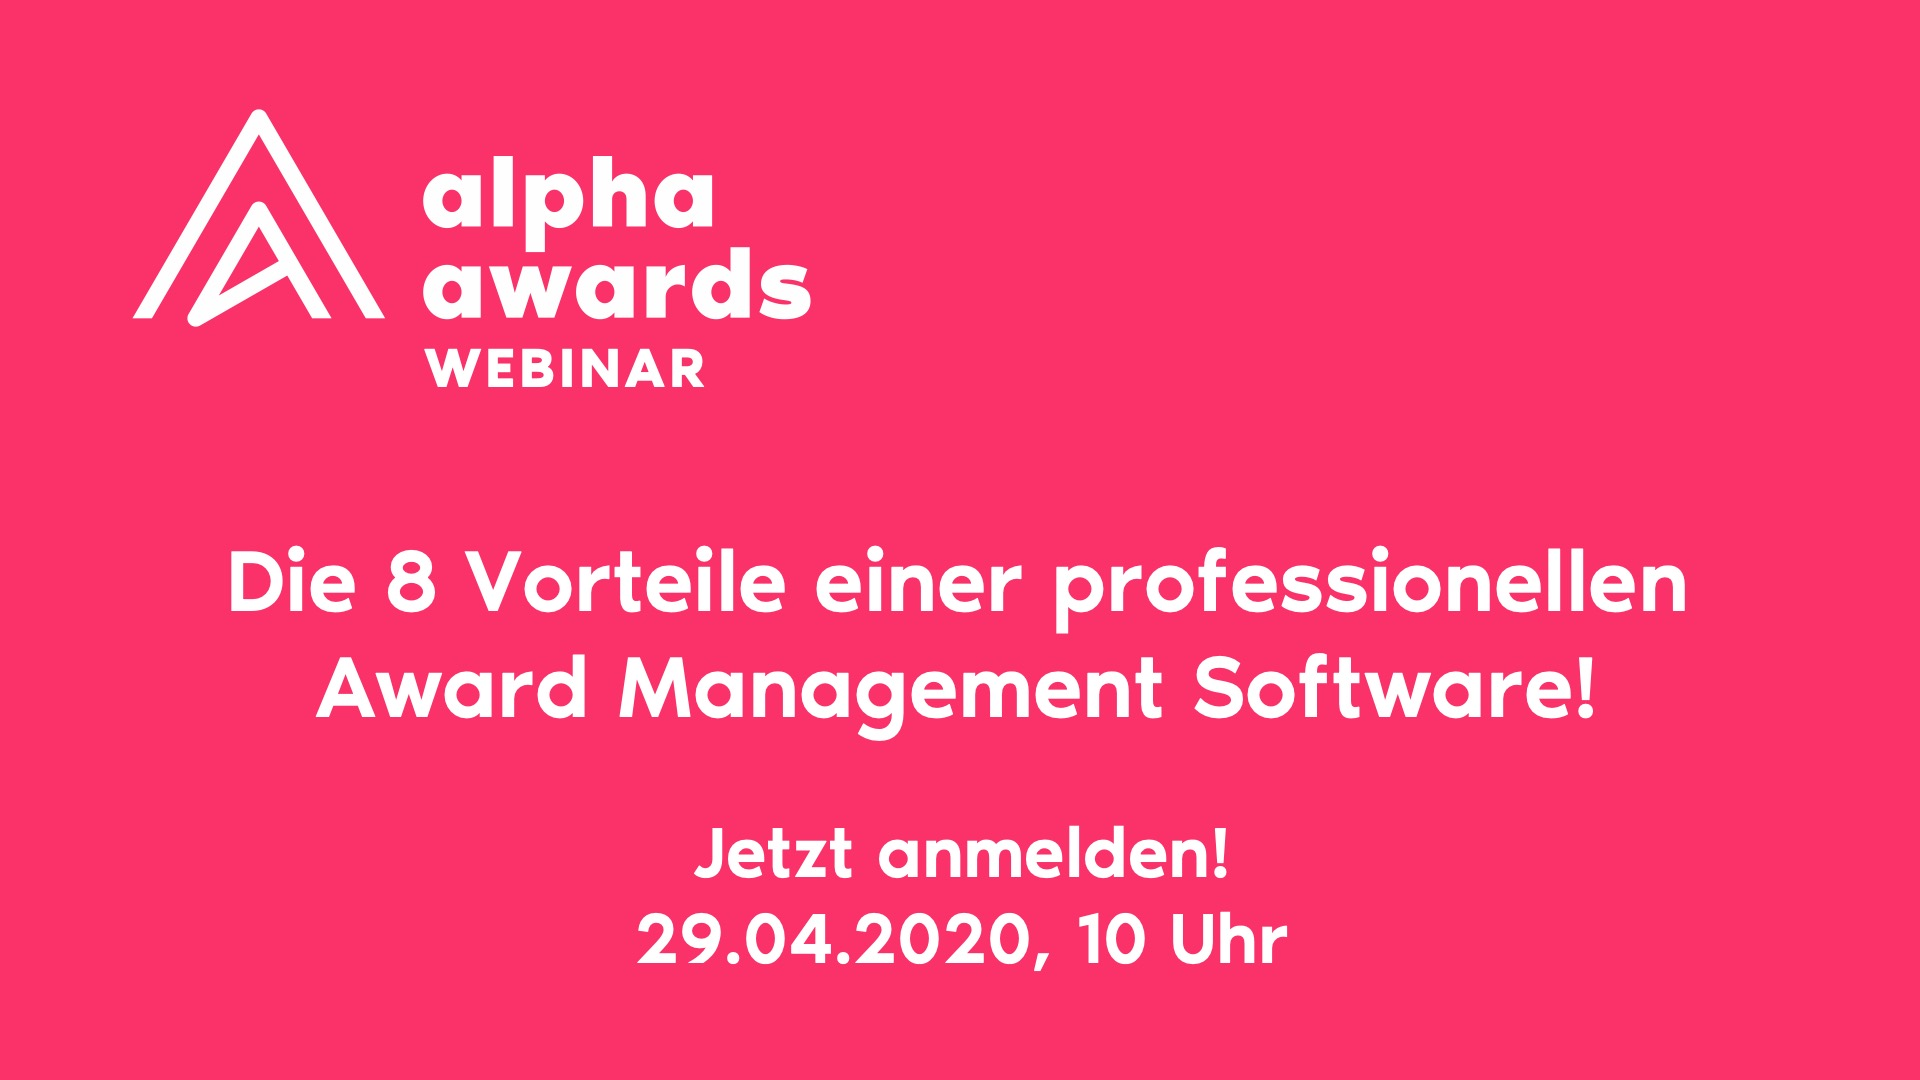 8 Vorteile einer Award Management Software